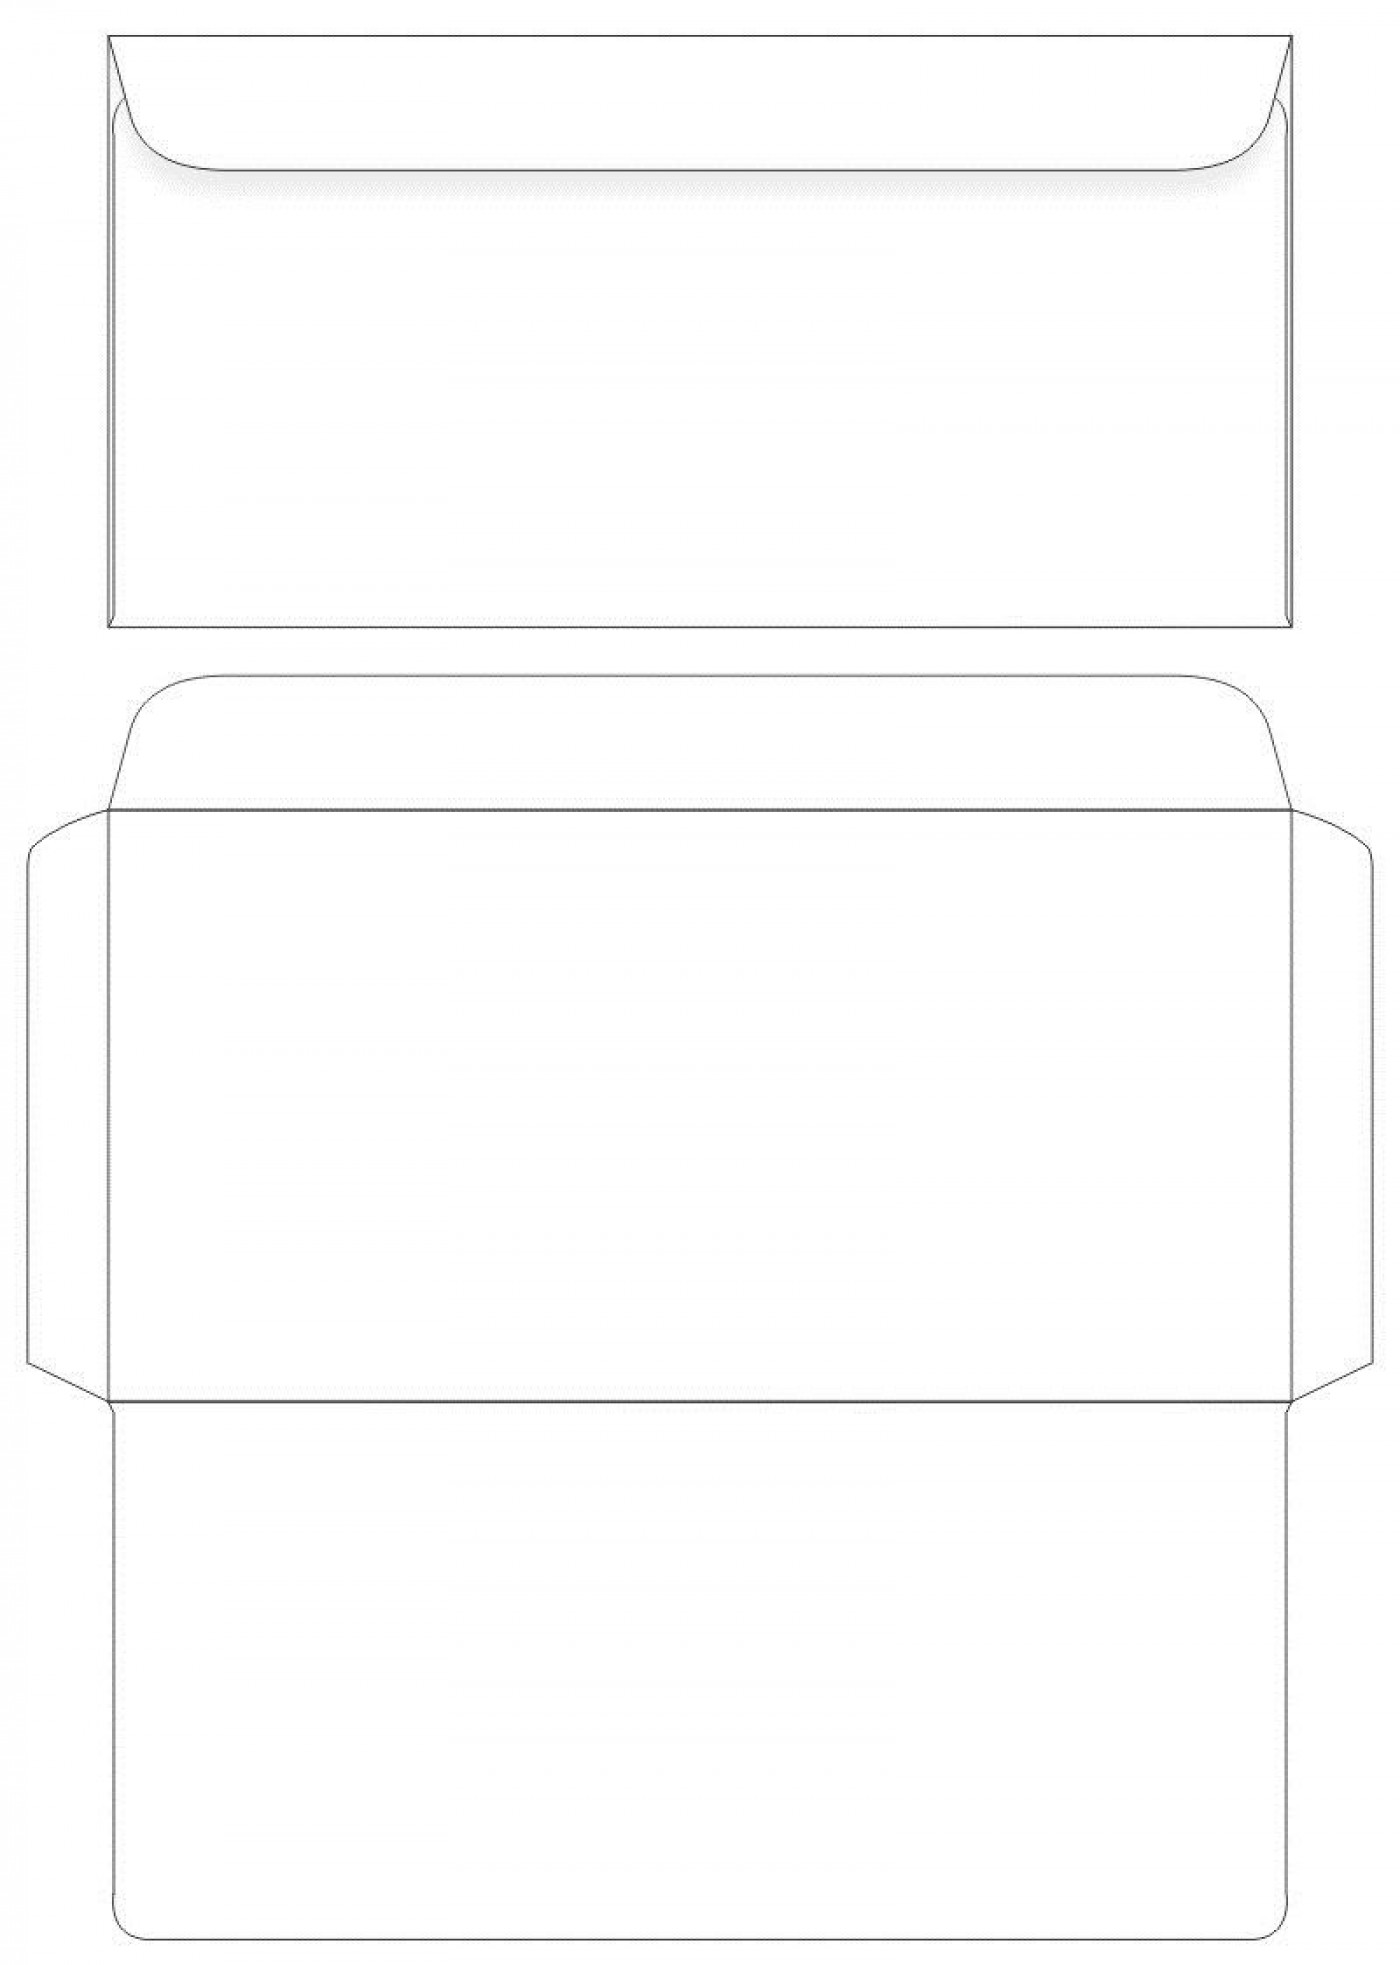 007 Unforgettable Envelope Label Template Free Inspiration  Download1400